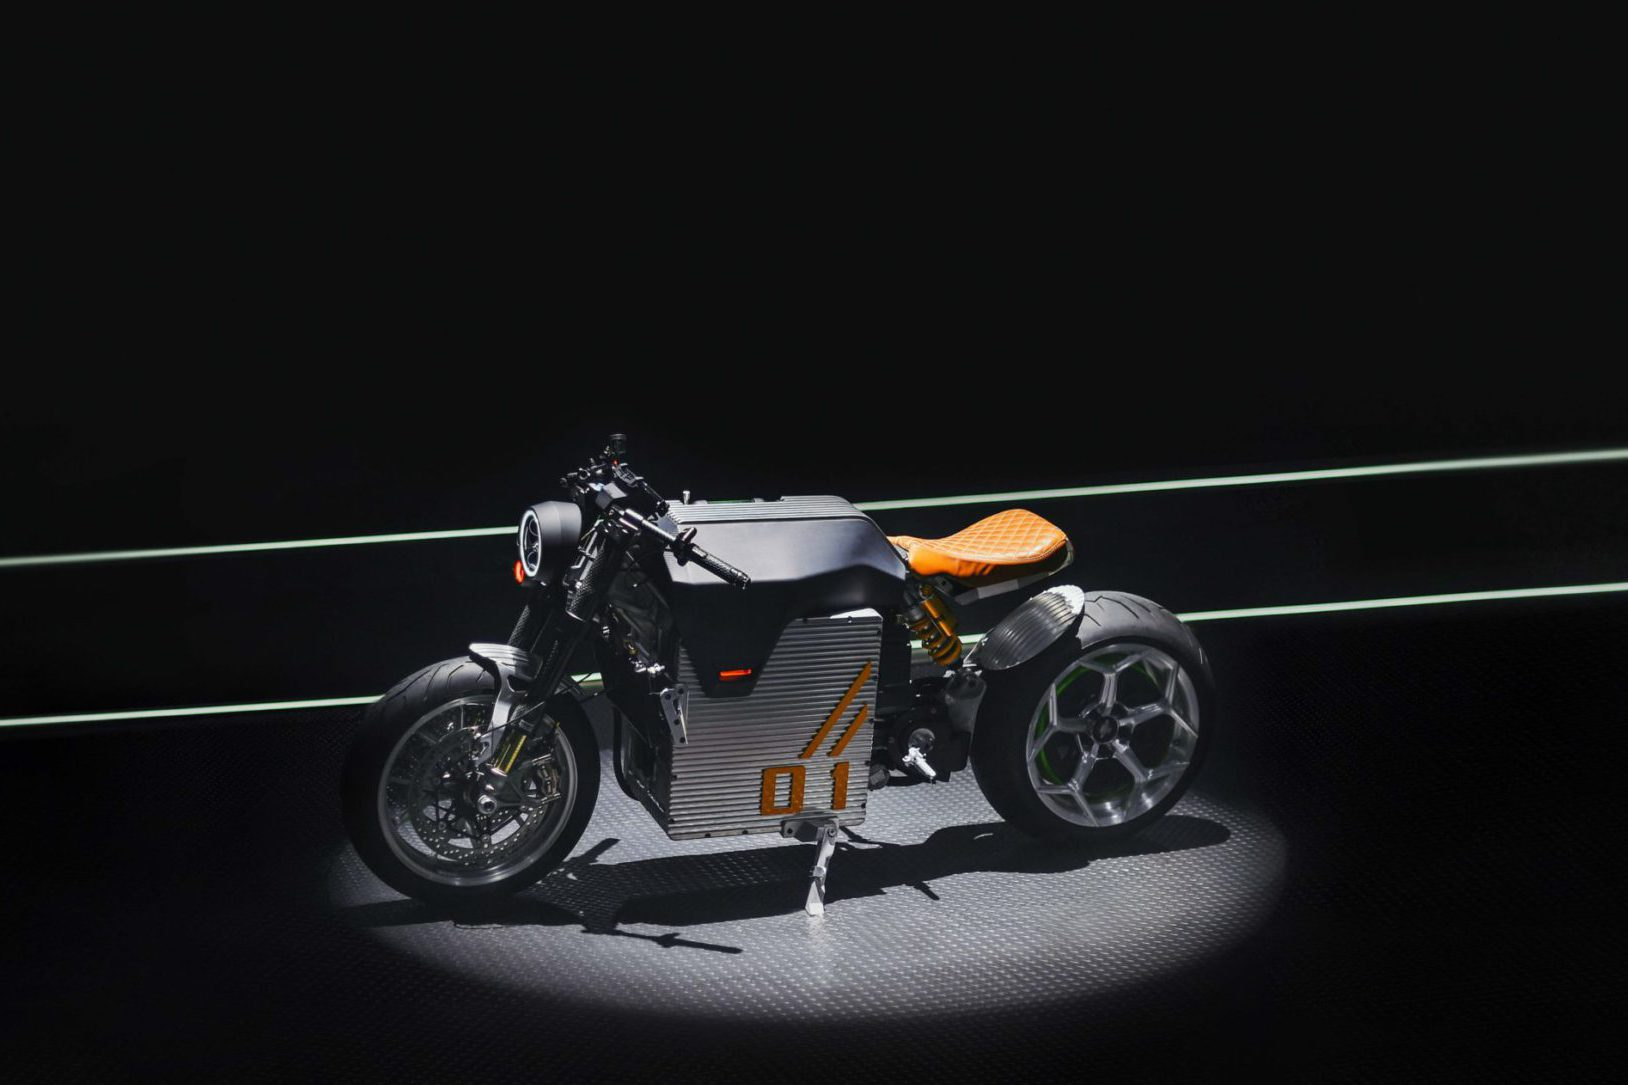 DC Classic electric cafe racer